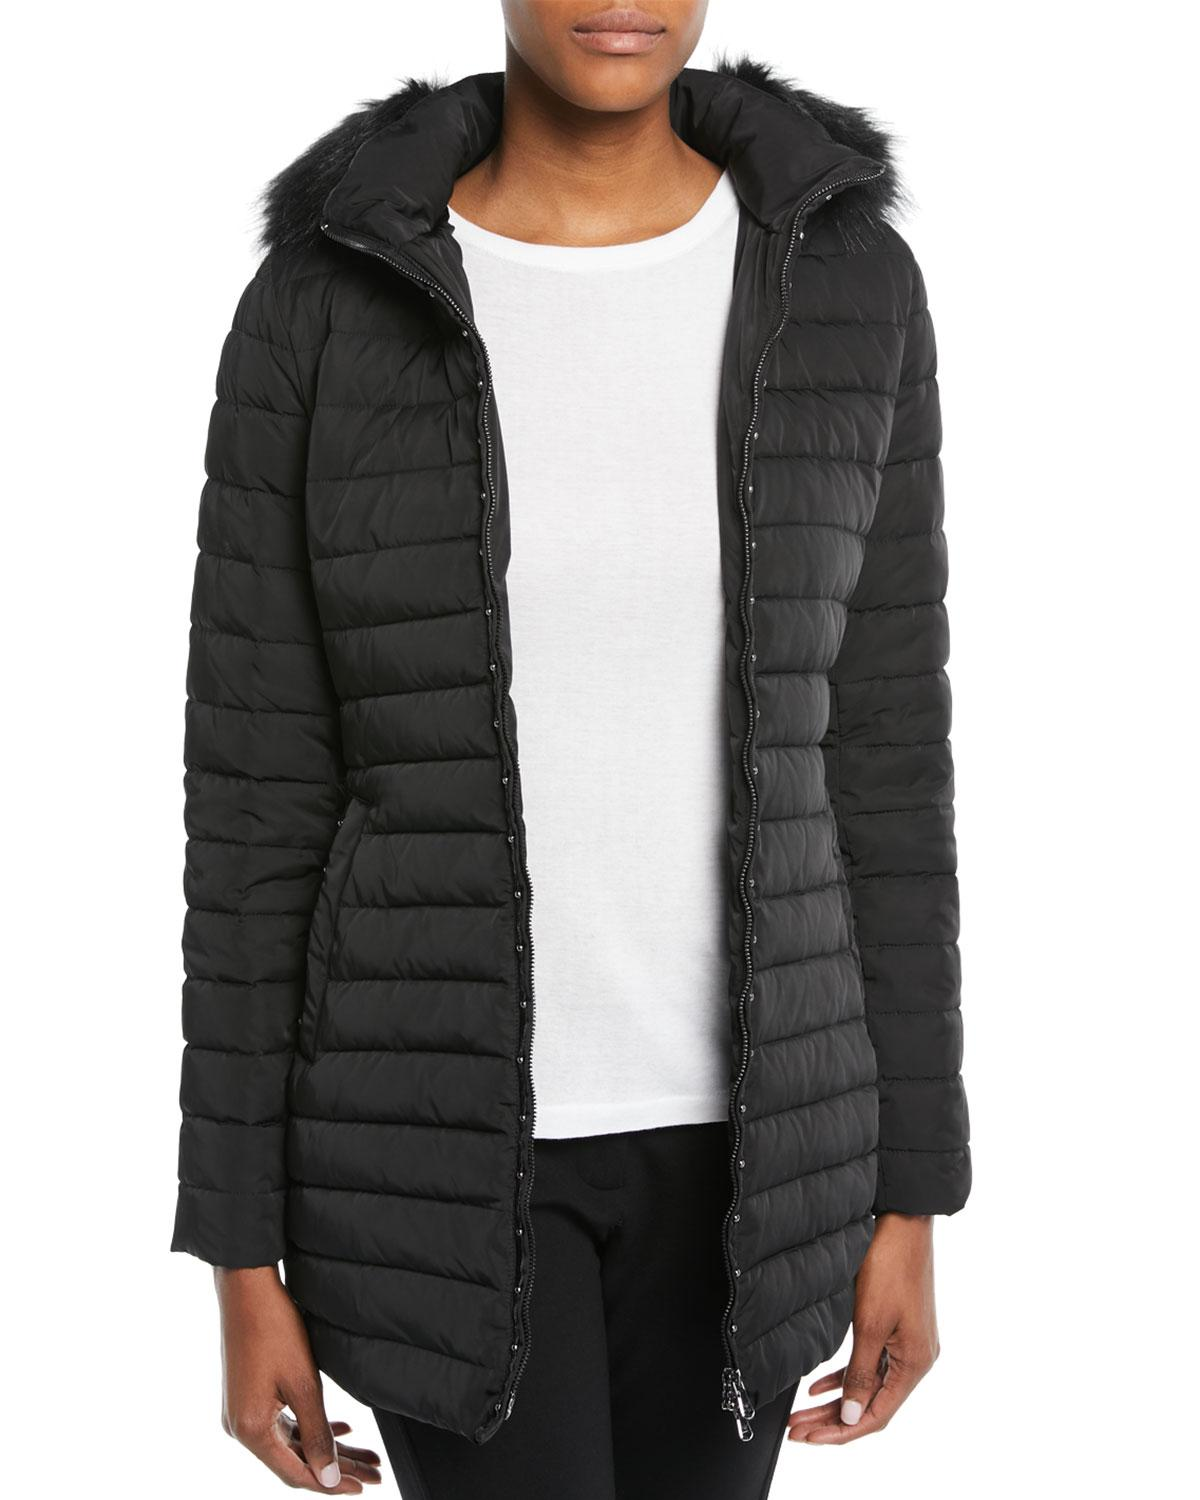 c3ffabf2c7 Zip-Front Fitted Quilted Puffer Parka Jacket W/ Detached Hood in Black